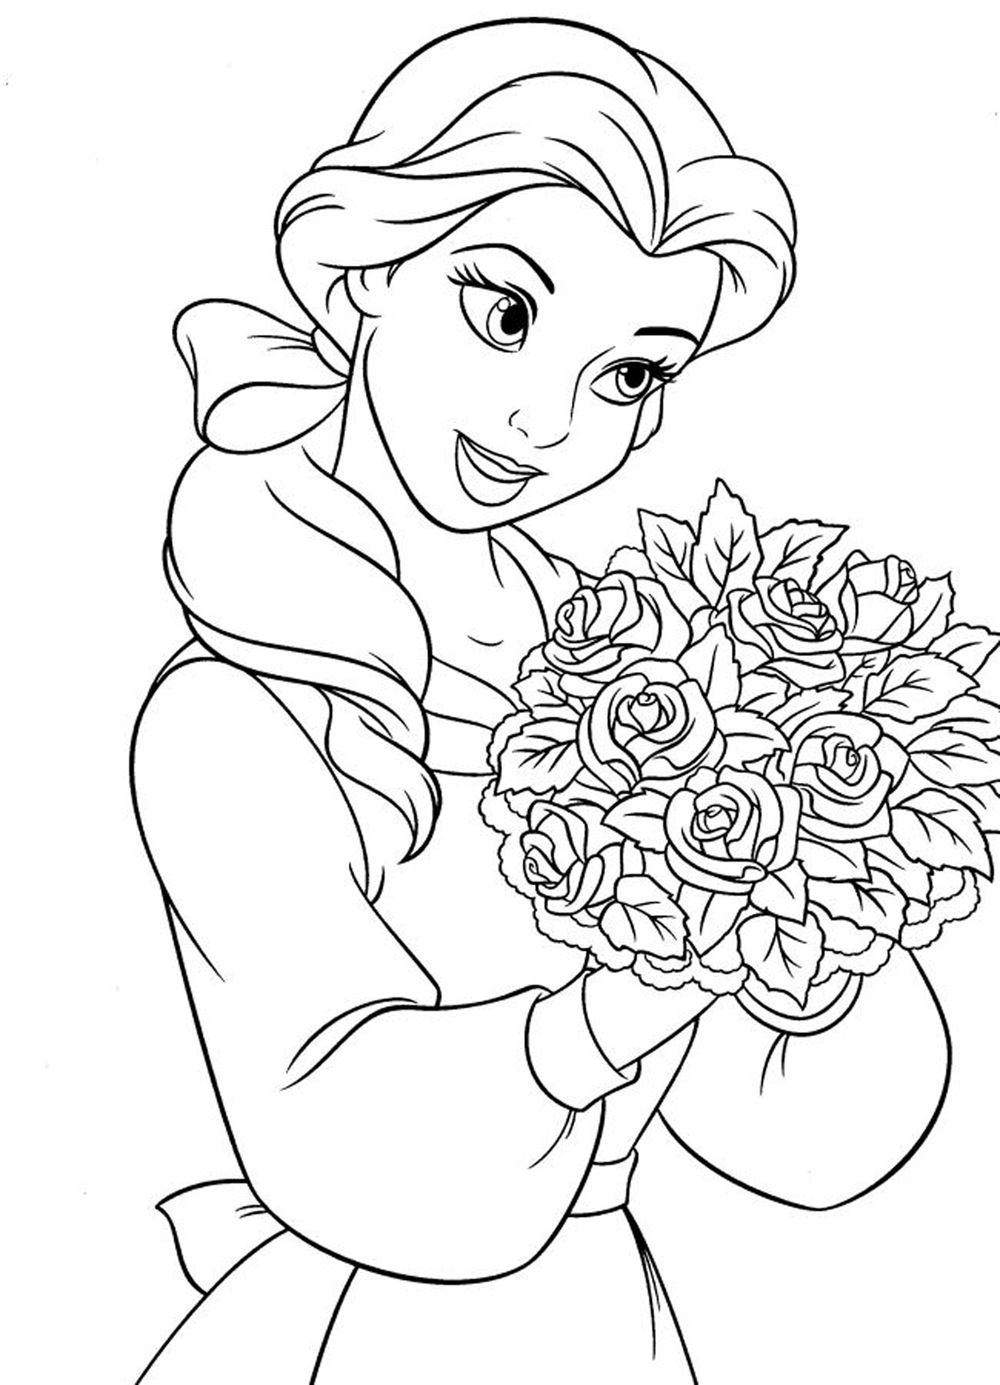 Disney Princess Coloring Book Princess Coloring Pages Belle